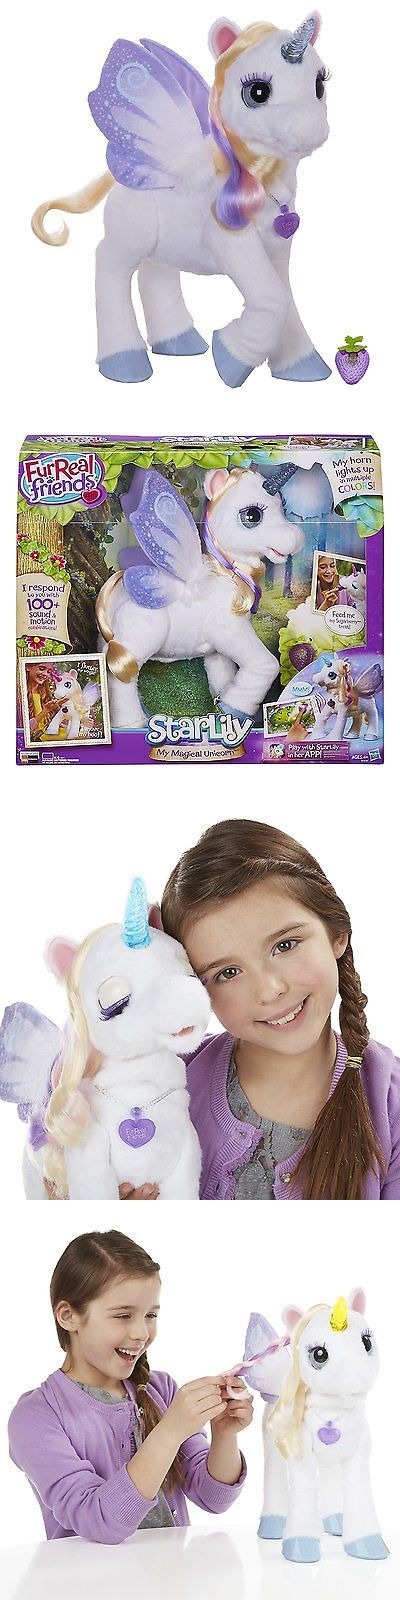 FurReal Friends 38288: My Magical Unicorn Furreal Friends Starlily Kids Beautiful Lights Up Gift New -> BUY IT NOW ONLY: $154.67 on eBay!